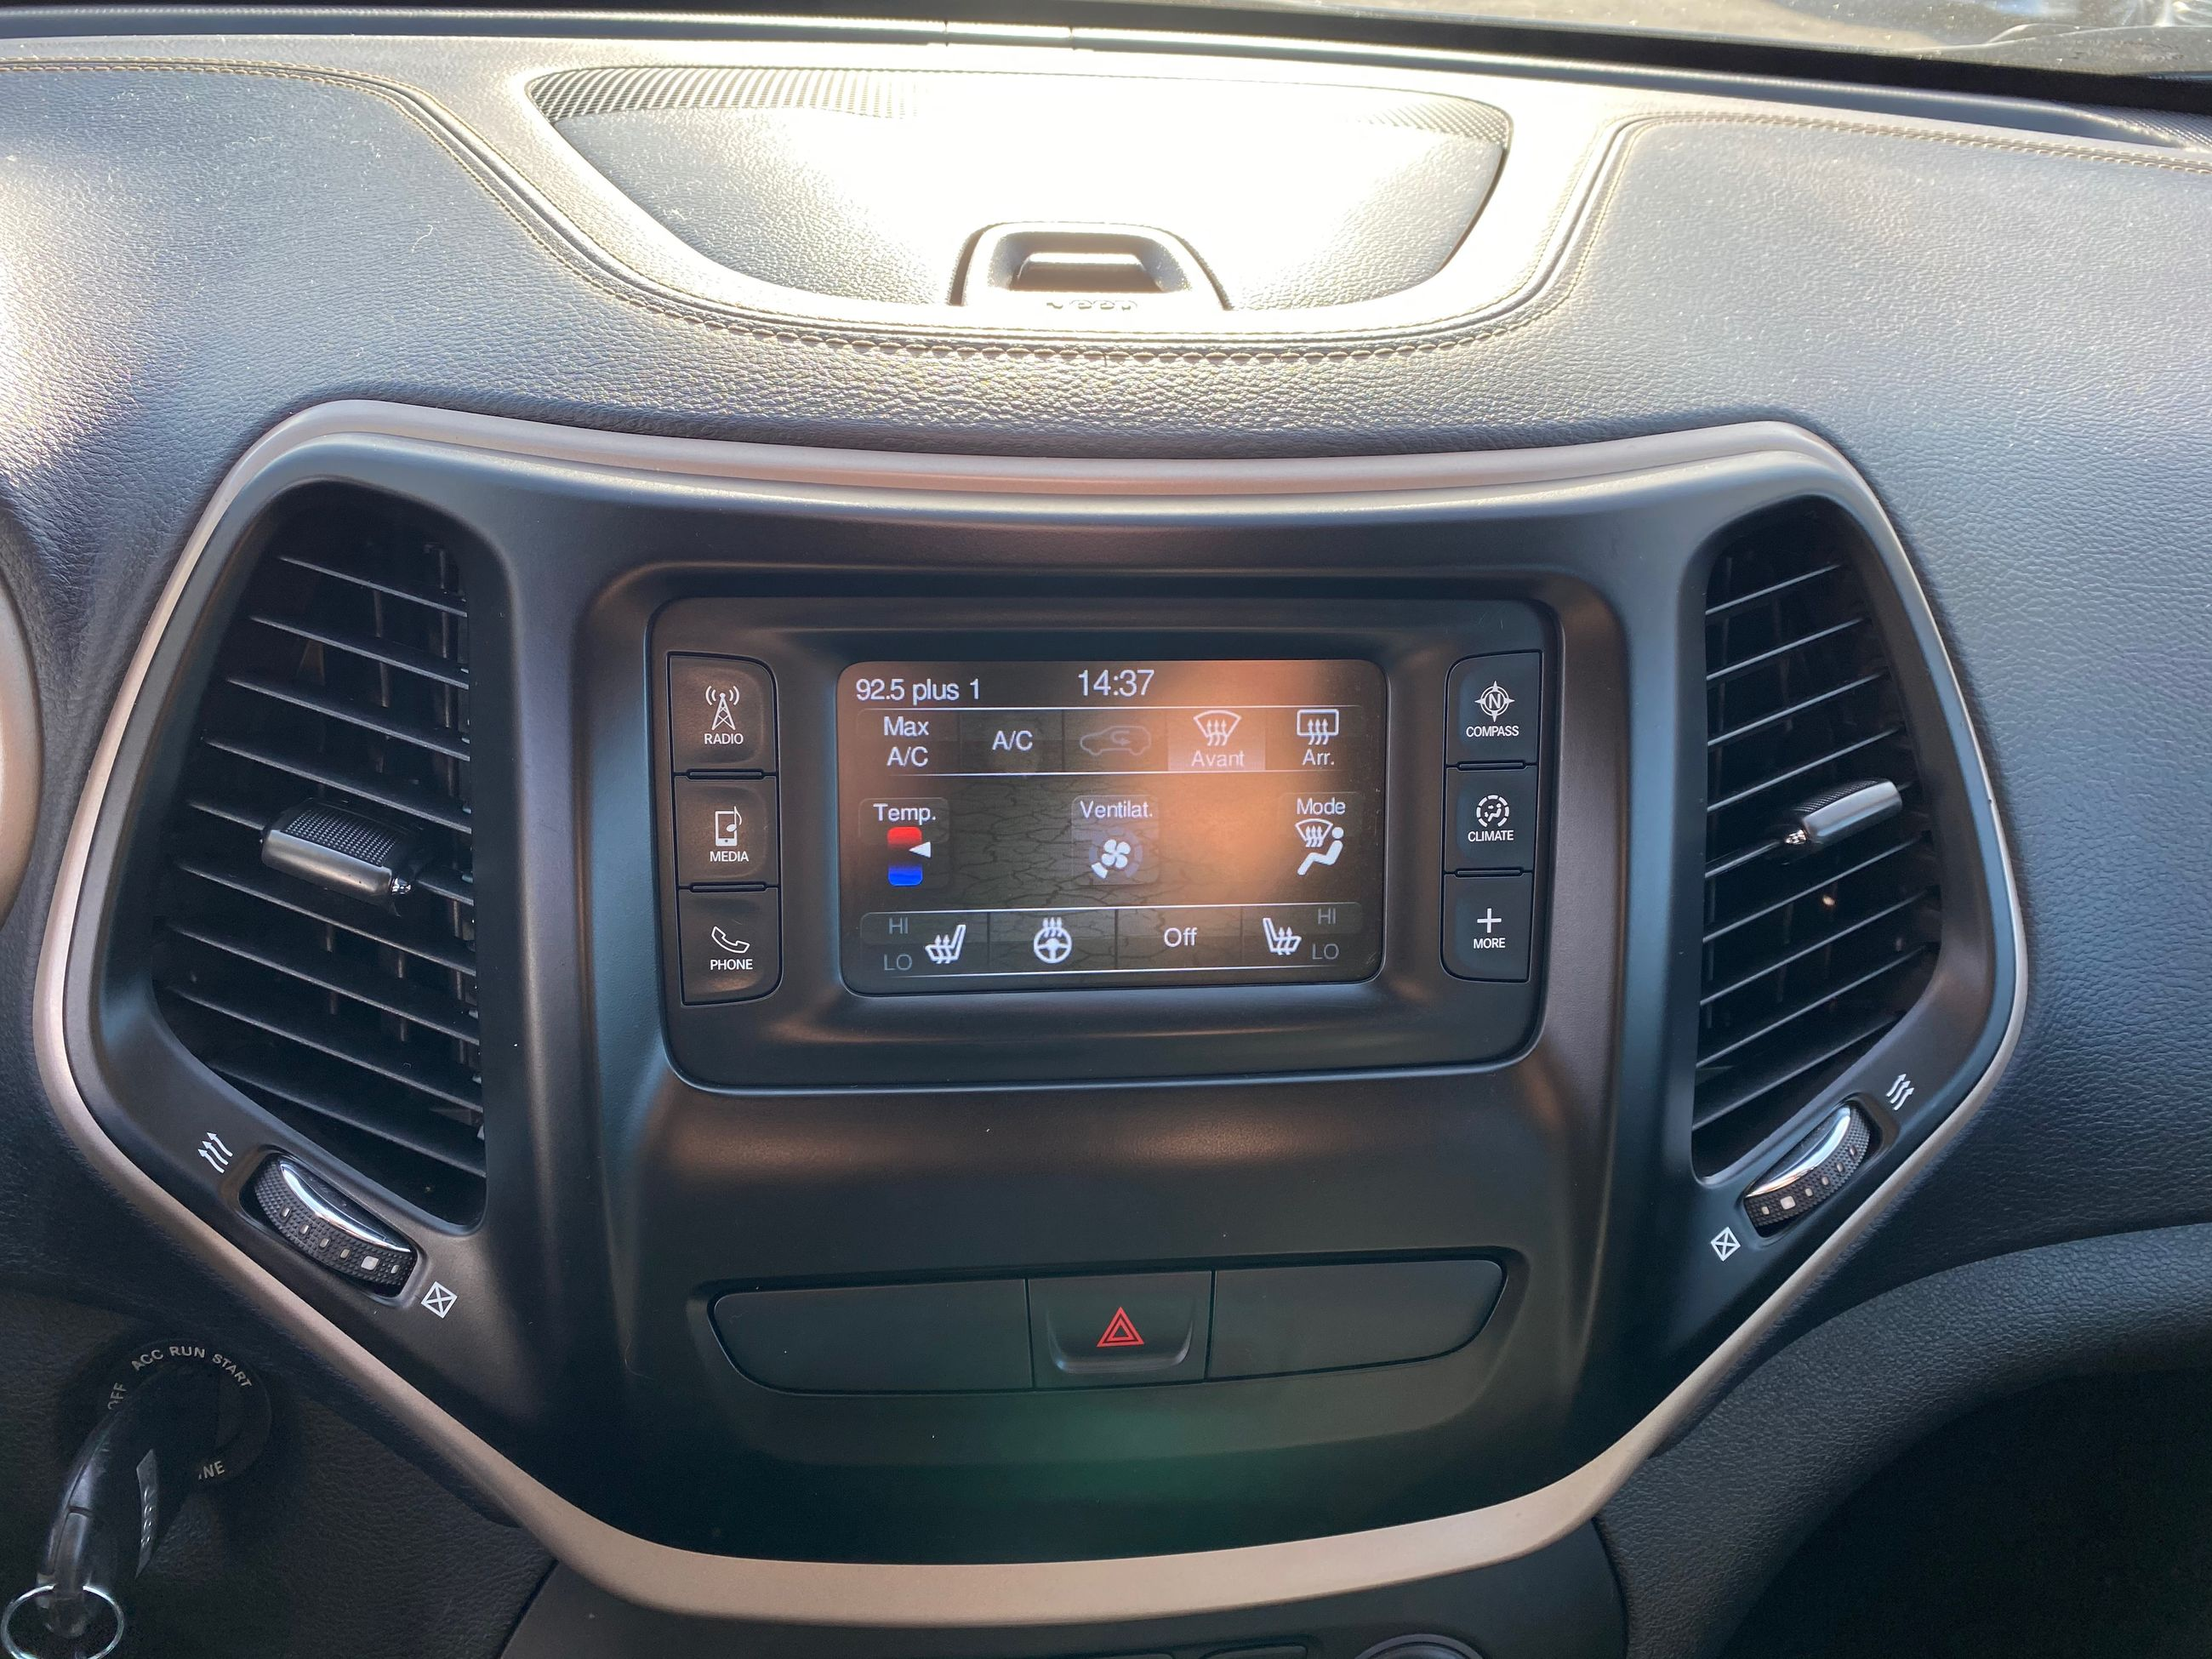 2018 Jeep Cherokee complet